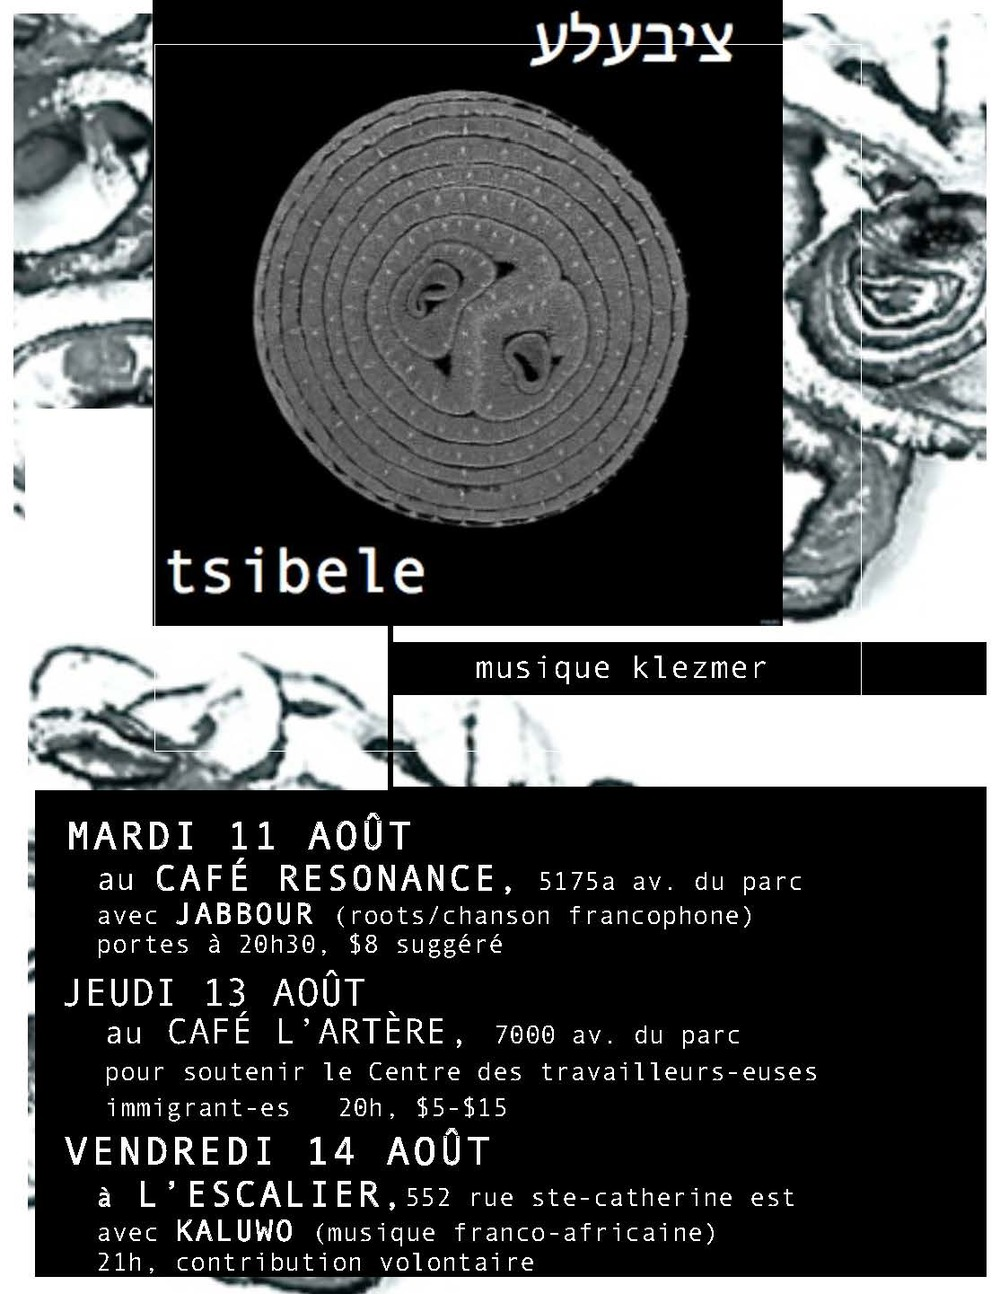 tsibele poster updated.jpg